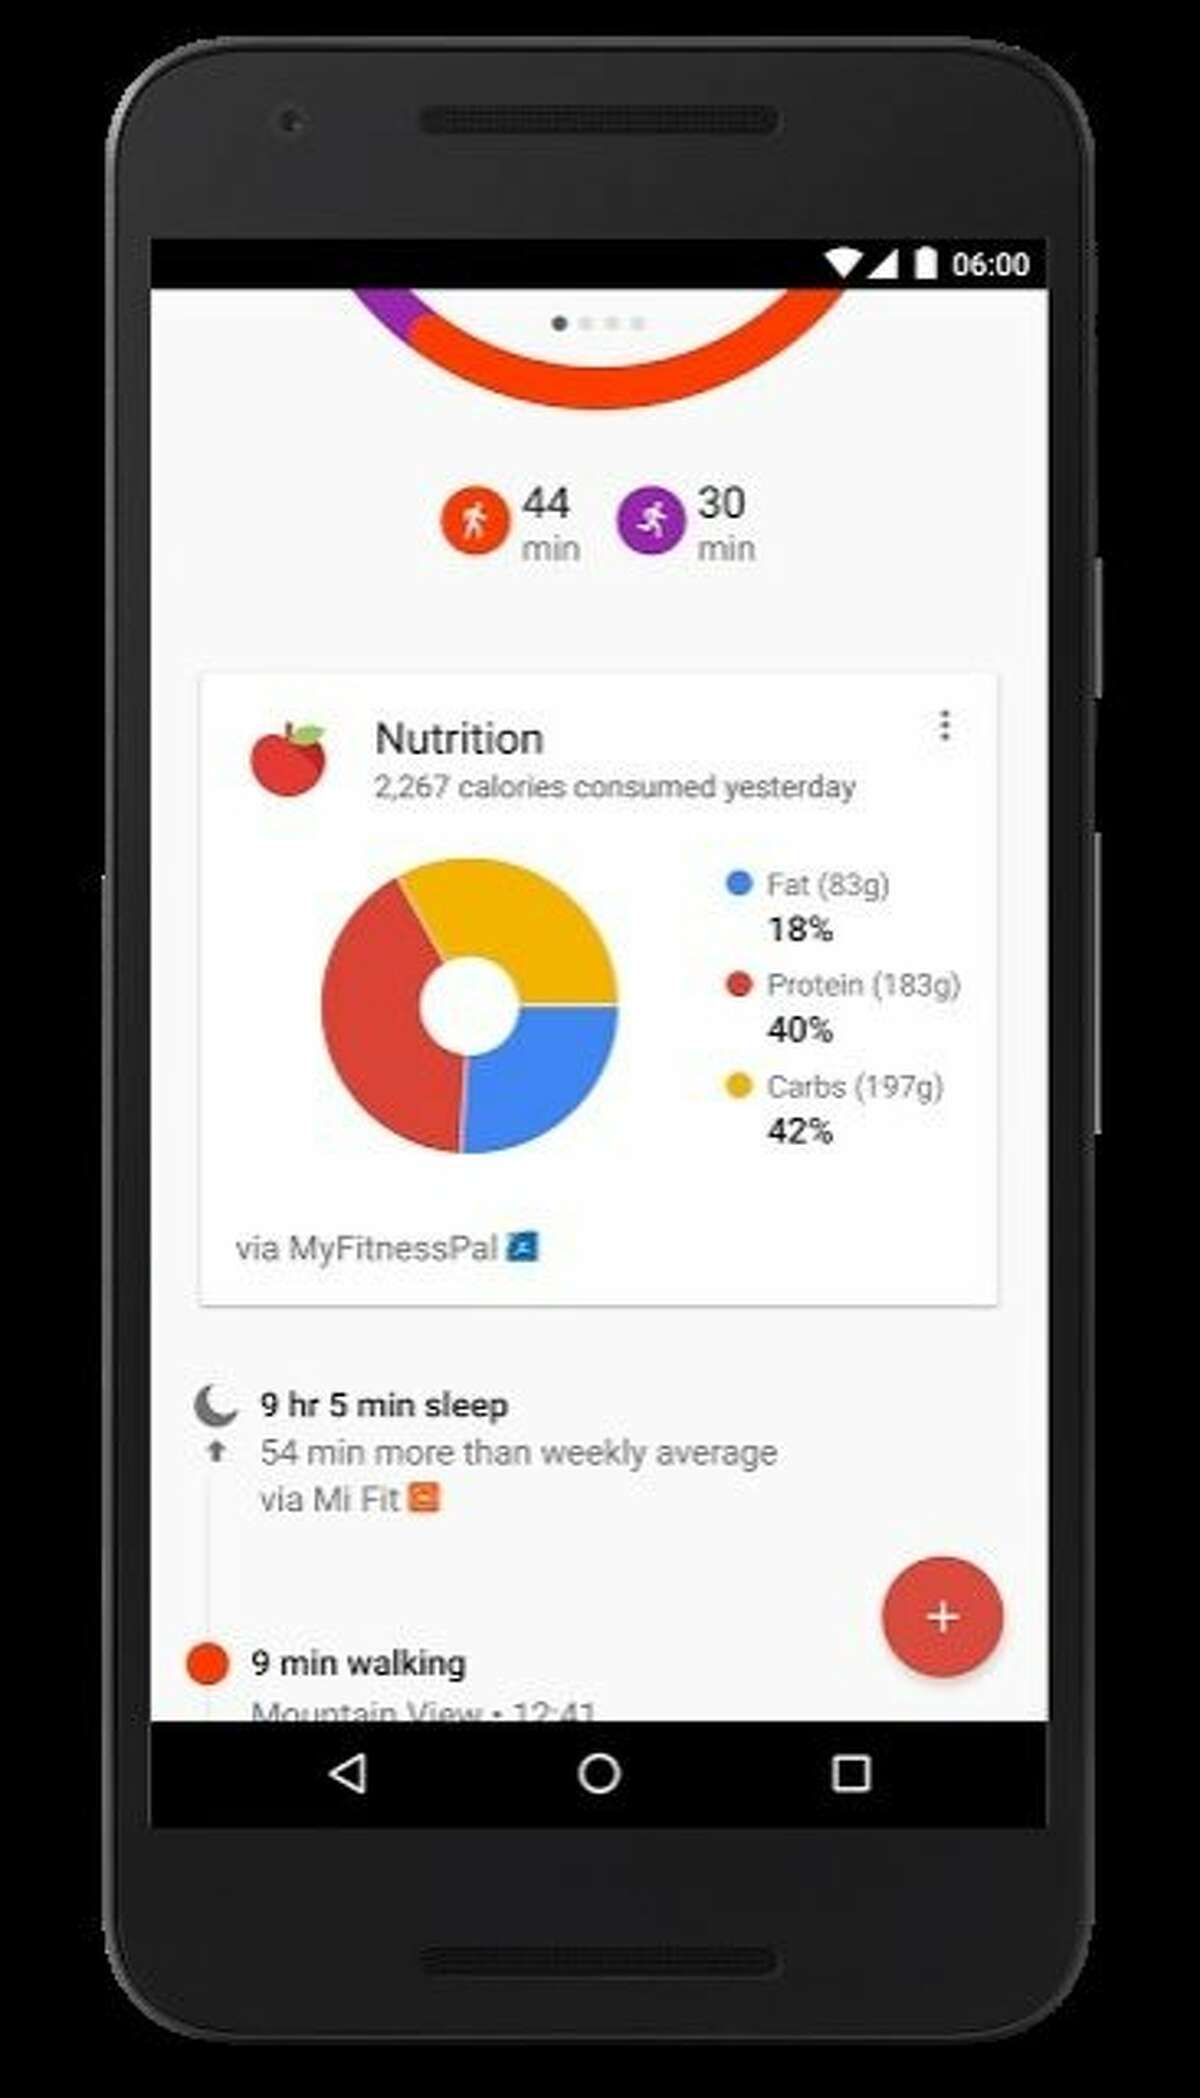 Just in time for the holiday eating period, Google has updated its Google Fit apps, which work with Android Wear smart watches, to better track excercise activity, as shown in these screen shots from Google. An Android Wear watch can automatically detect whether you are doing sit-ups, push-ups or squats and record those to your daily activity data.